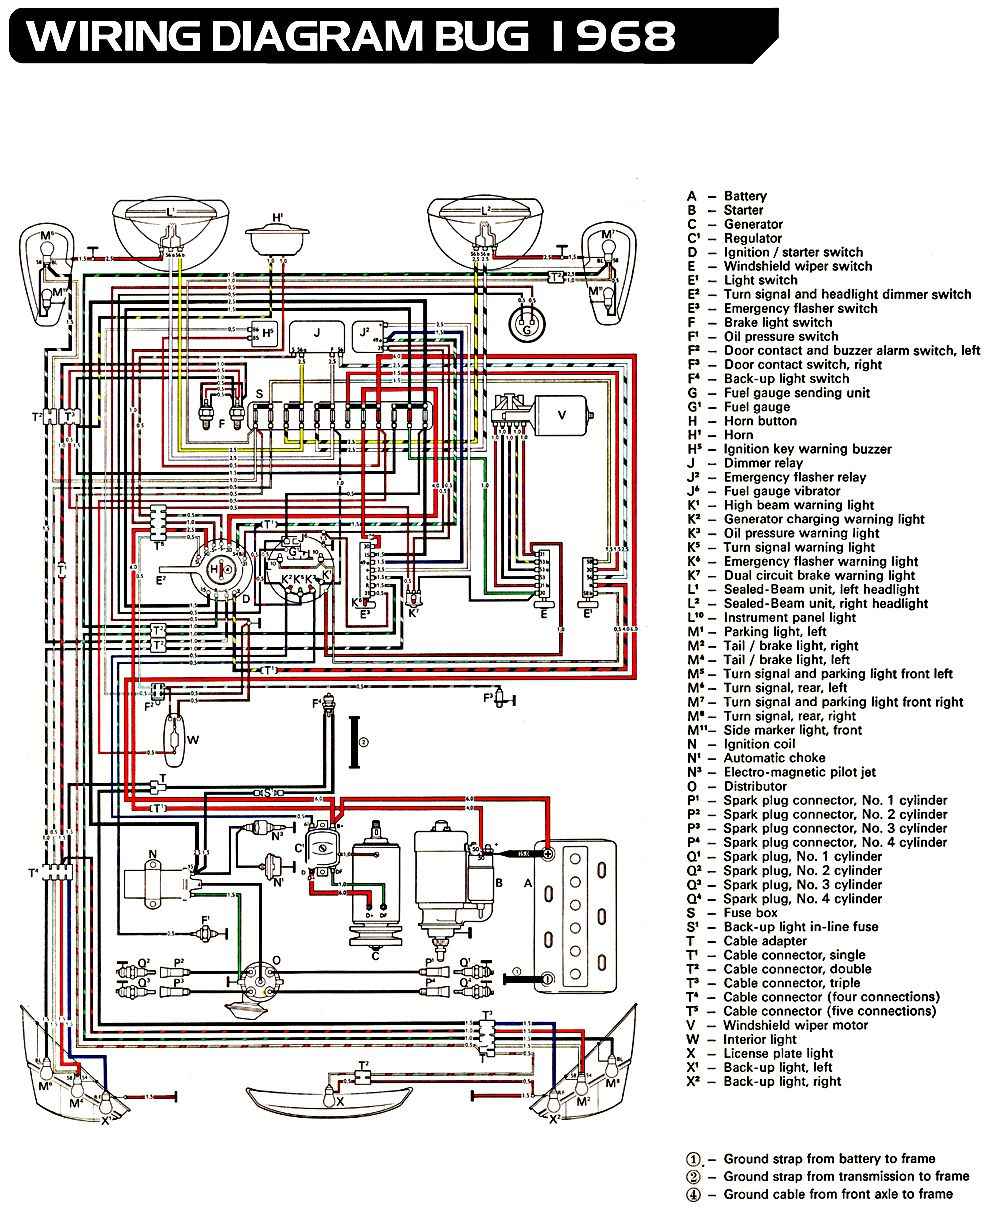 easy wiring harness vw air cooled wiring diagram forward easy wiring harness vw air cooled [ 996 x 1211 Pixel ]